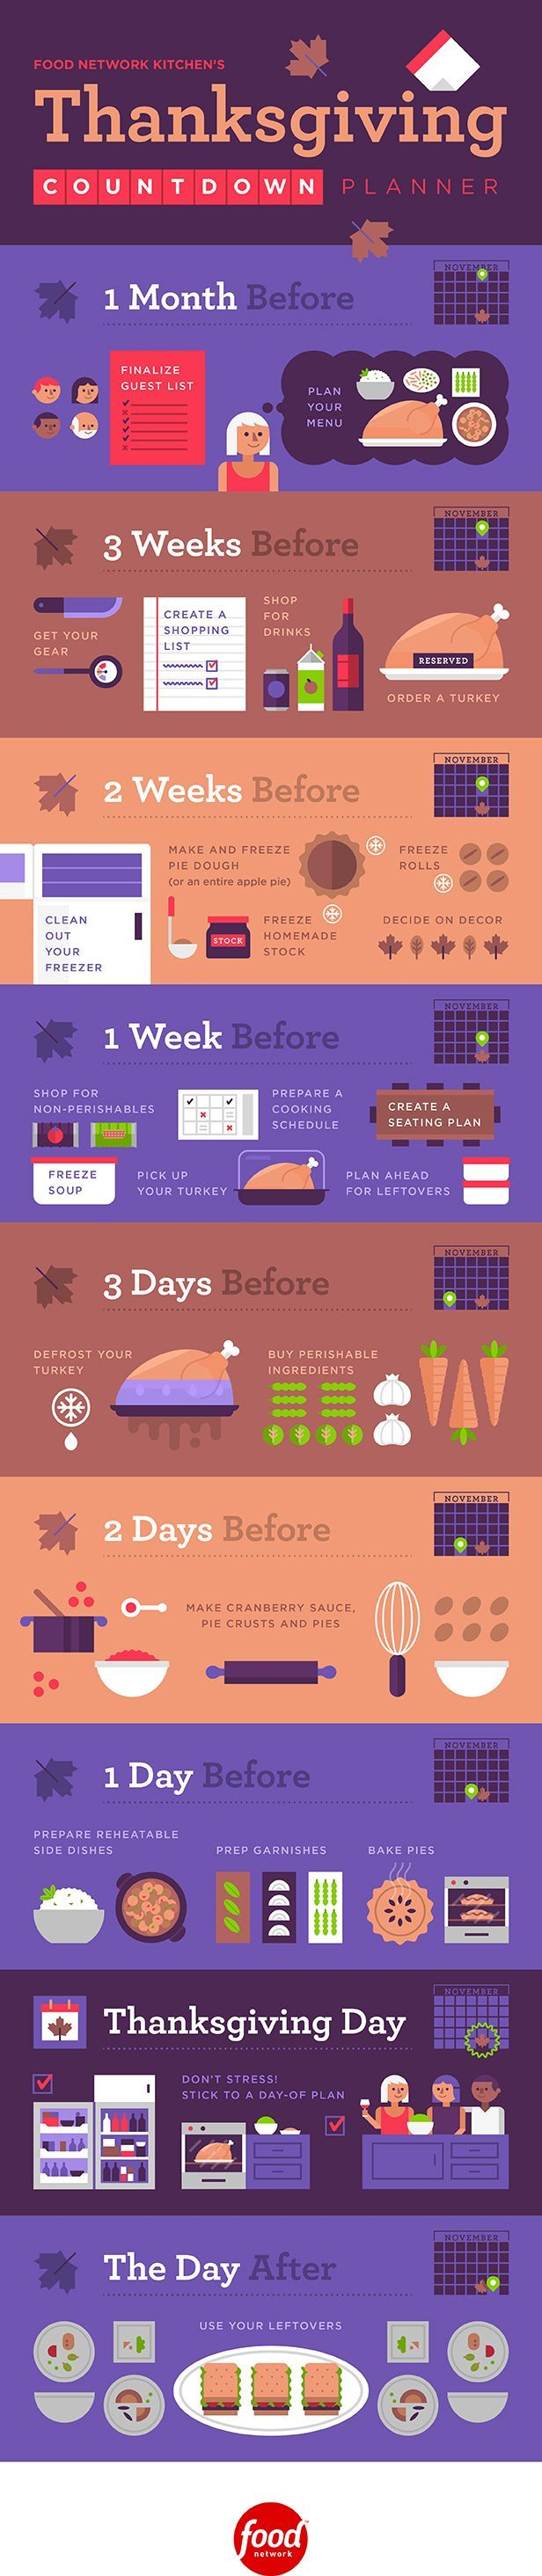 Host a stress-free Thanksgiving by starting your prep ahead of time; find out what you can do two weeks ahead of time, right up until the day of the big meal, w